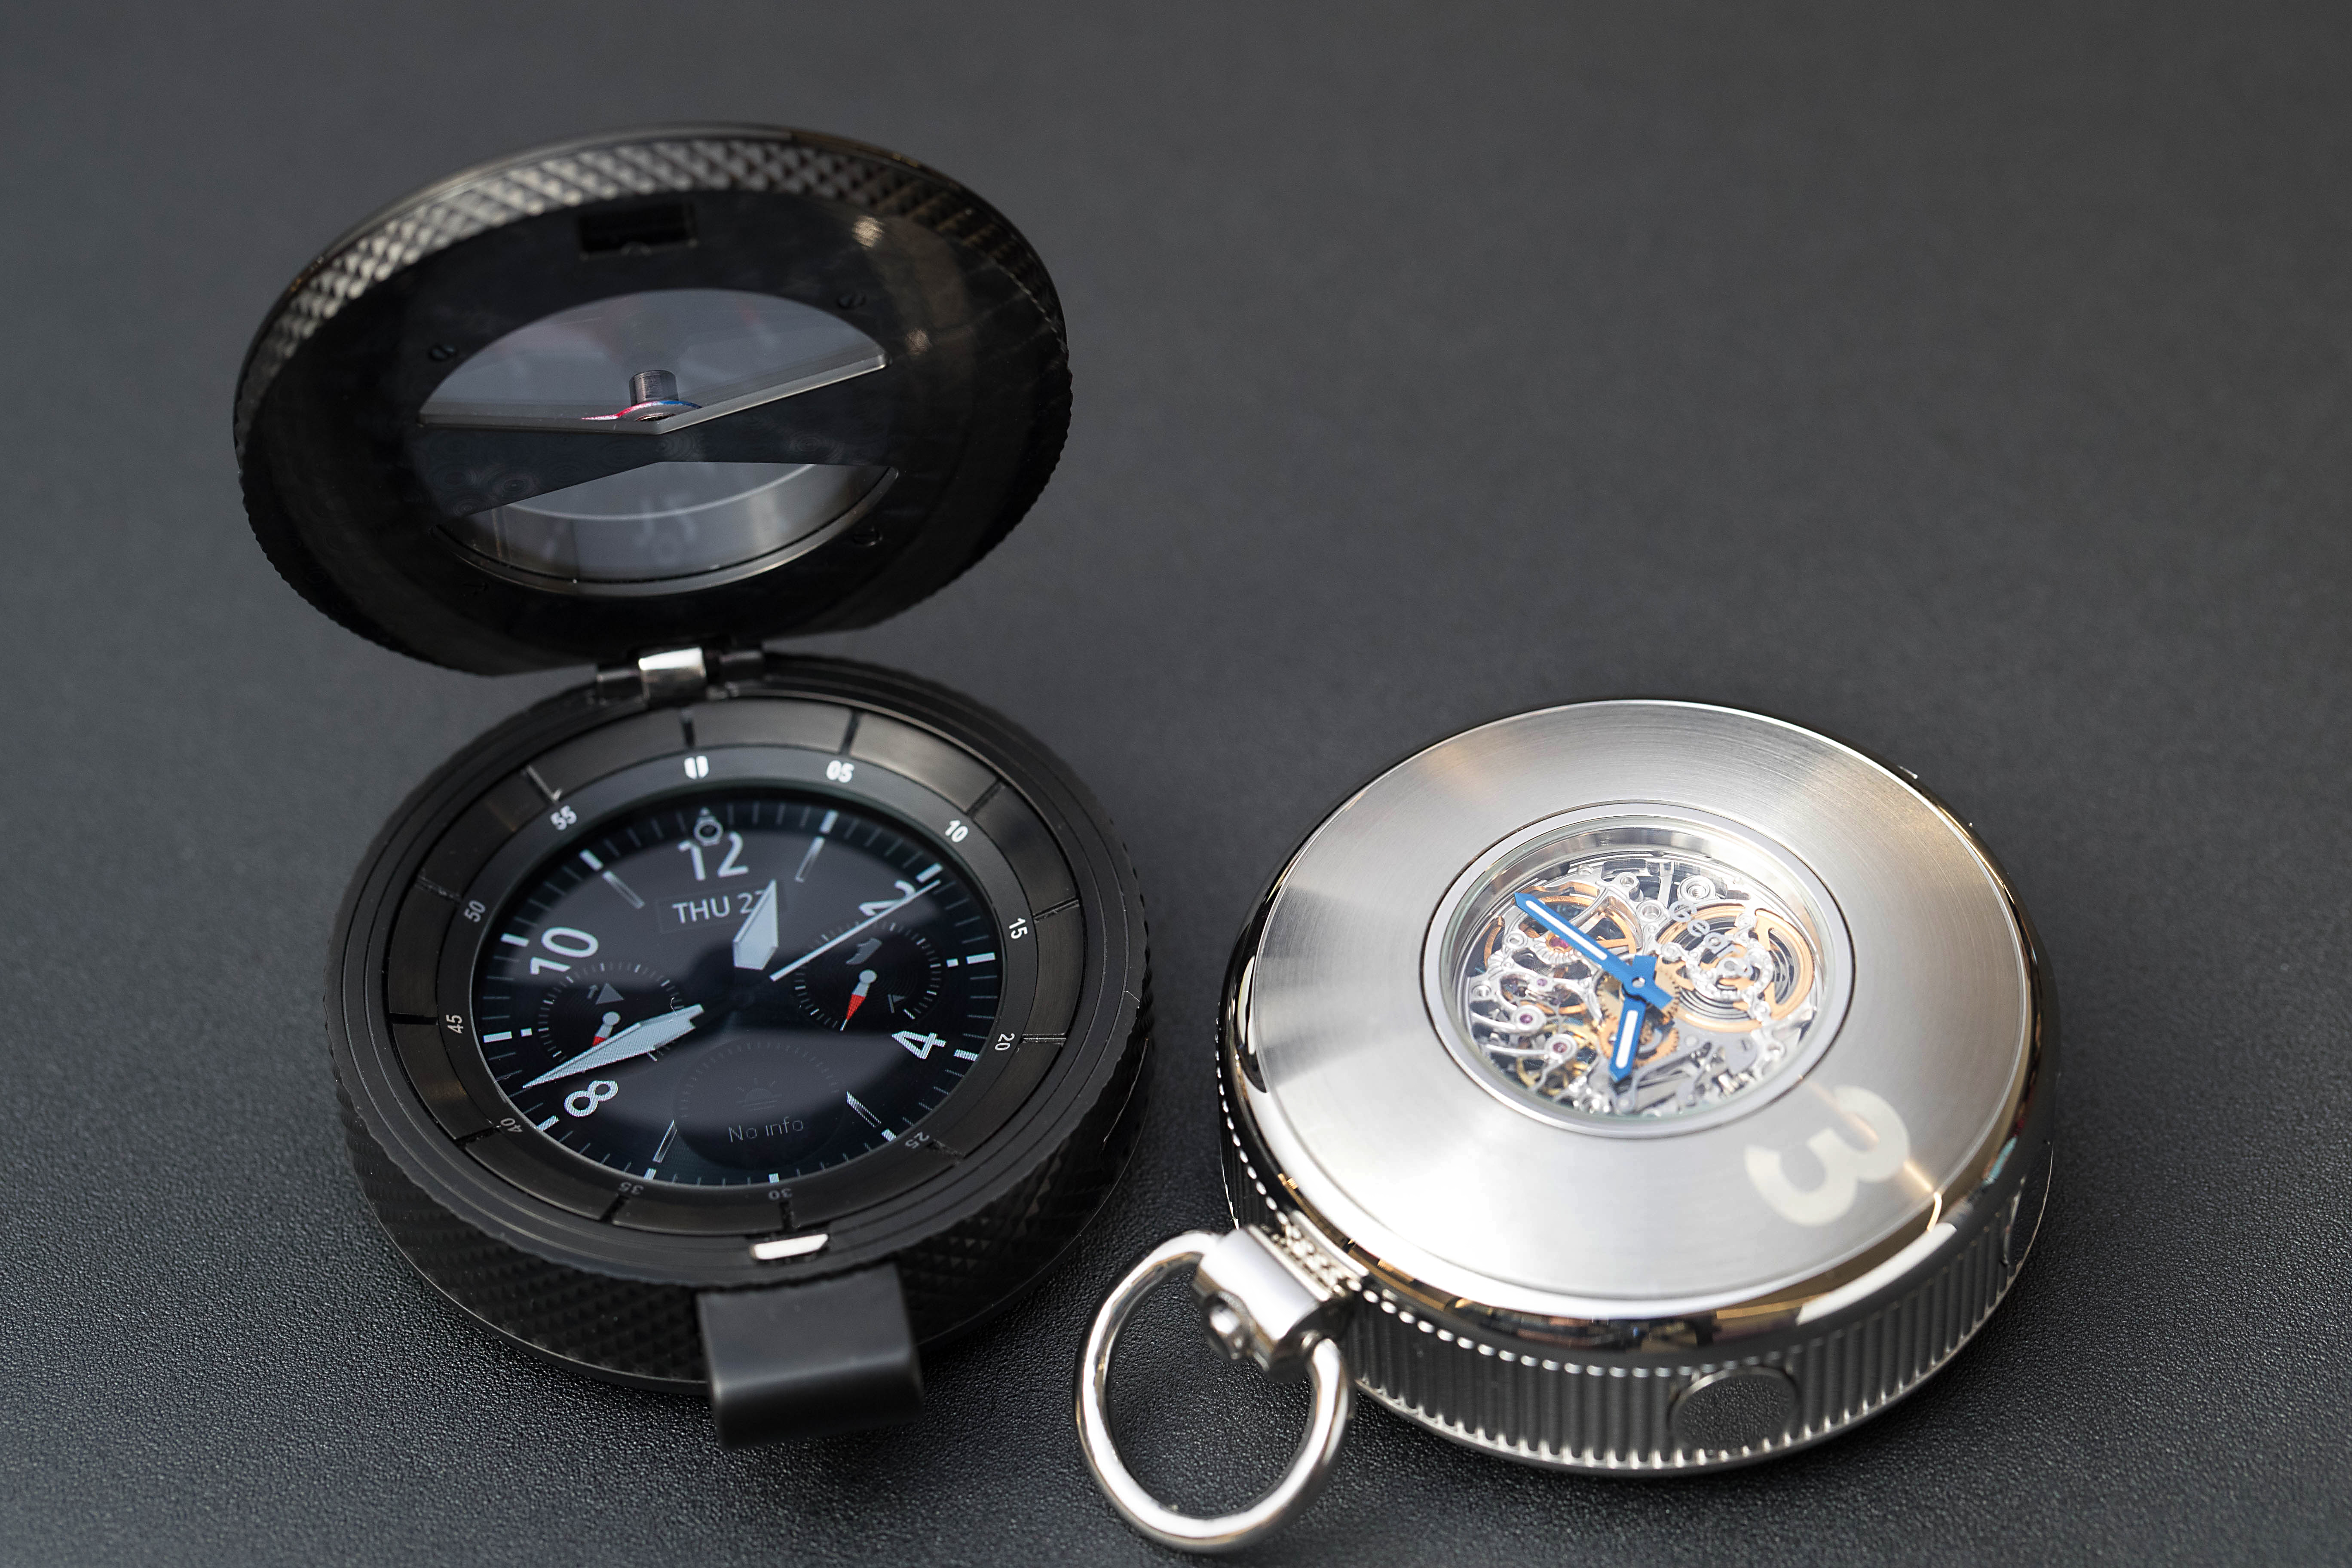 Samsung shows off Gear S3 pocket watch concept